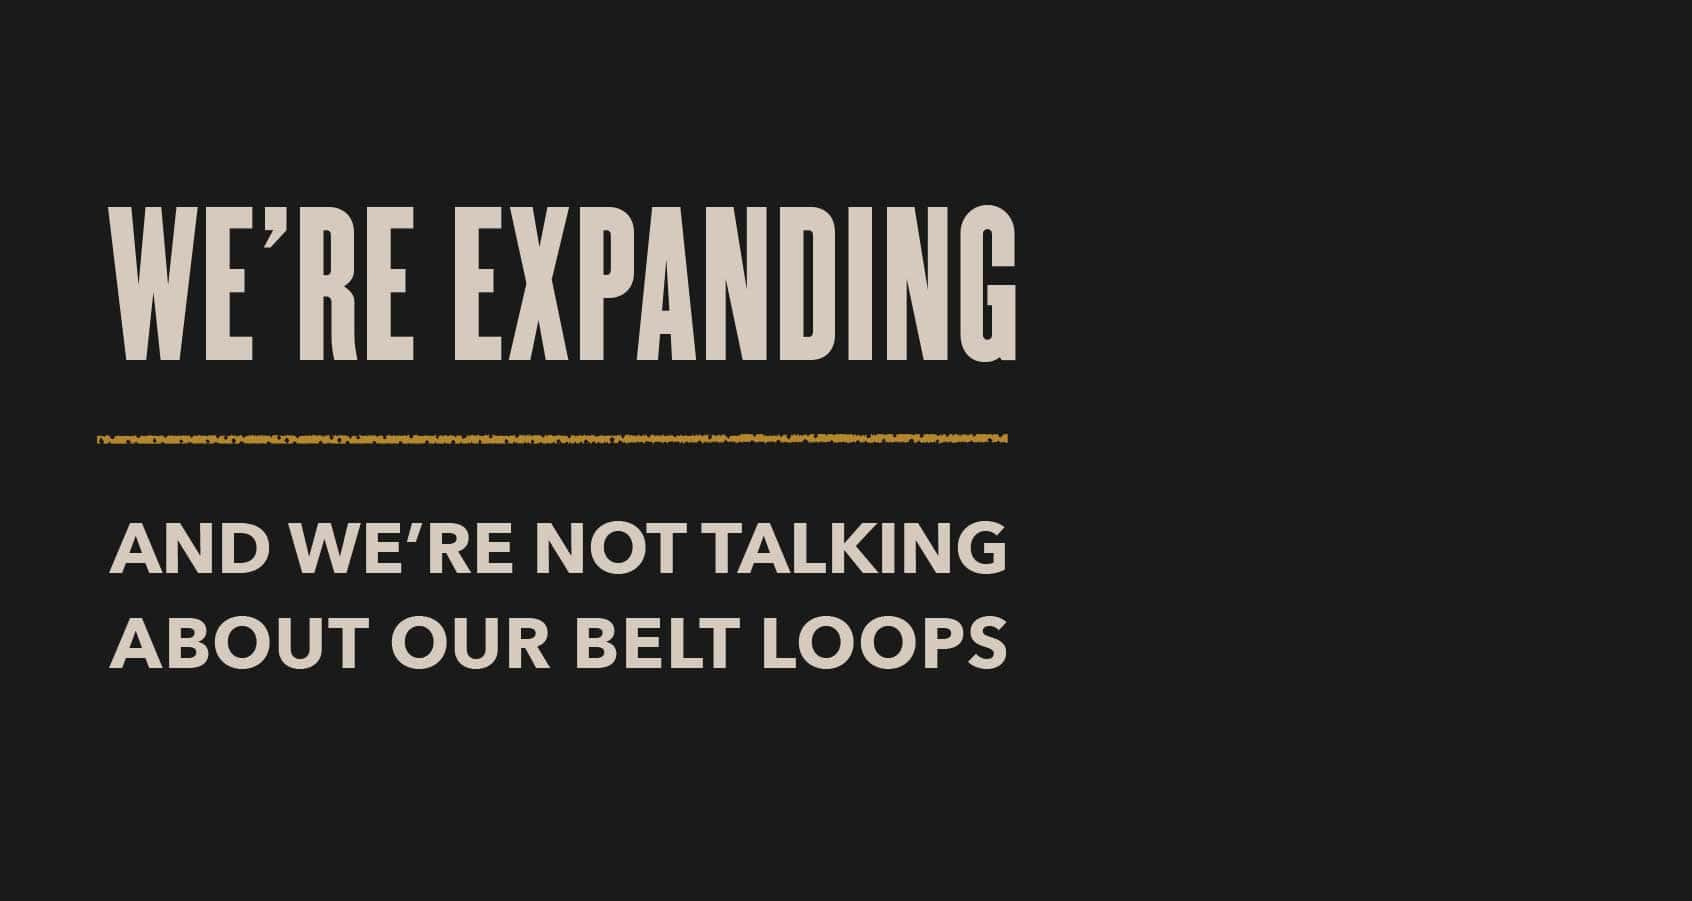 We're expanding and we're not talking about our belt loops